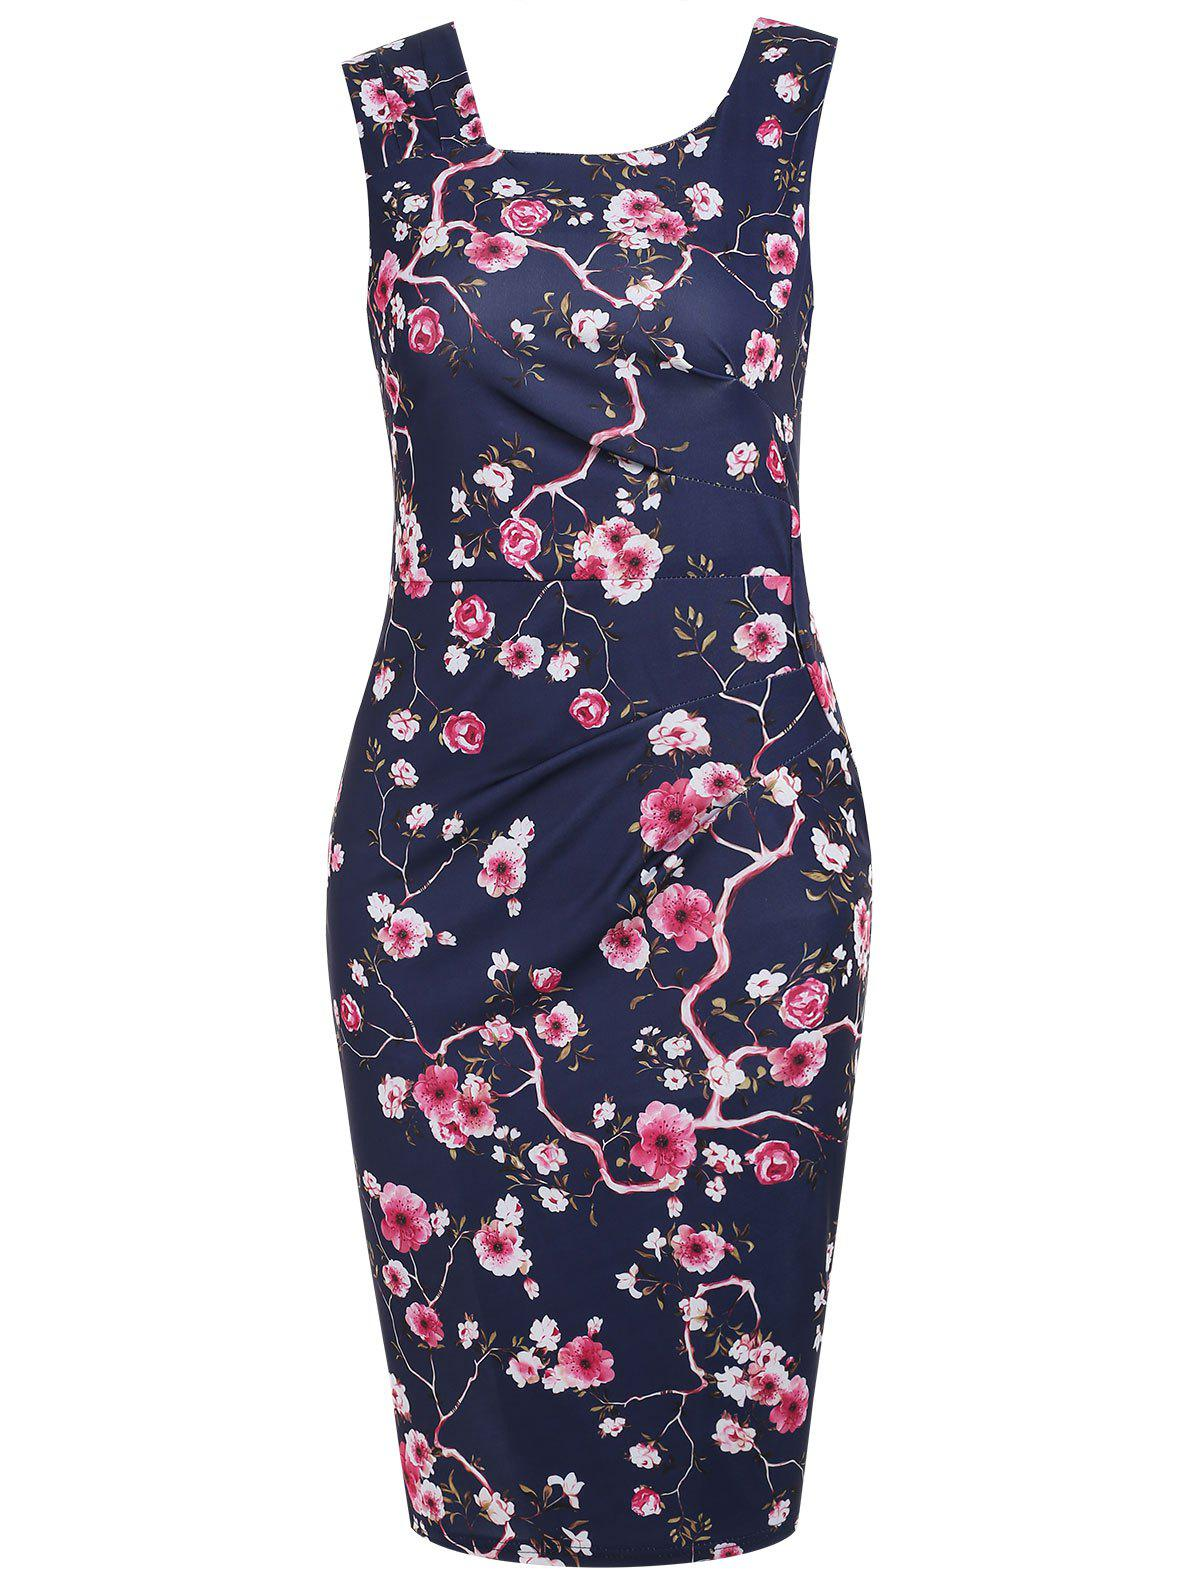 Fancy Floral Formal Knee Length Dress